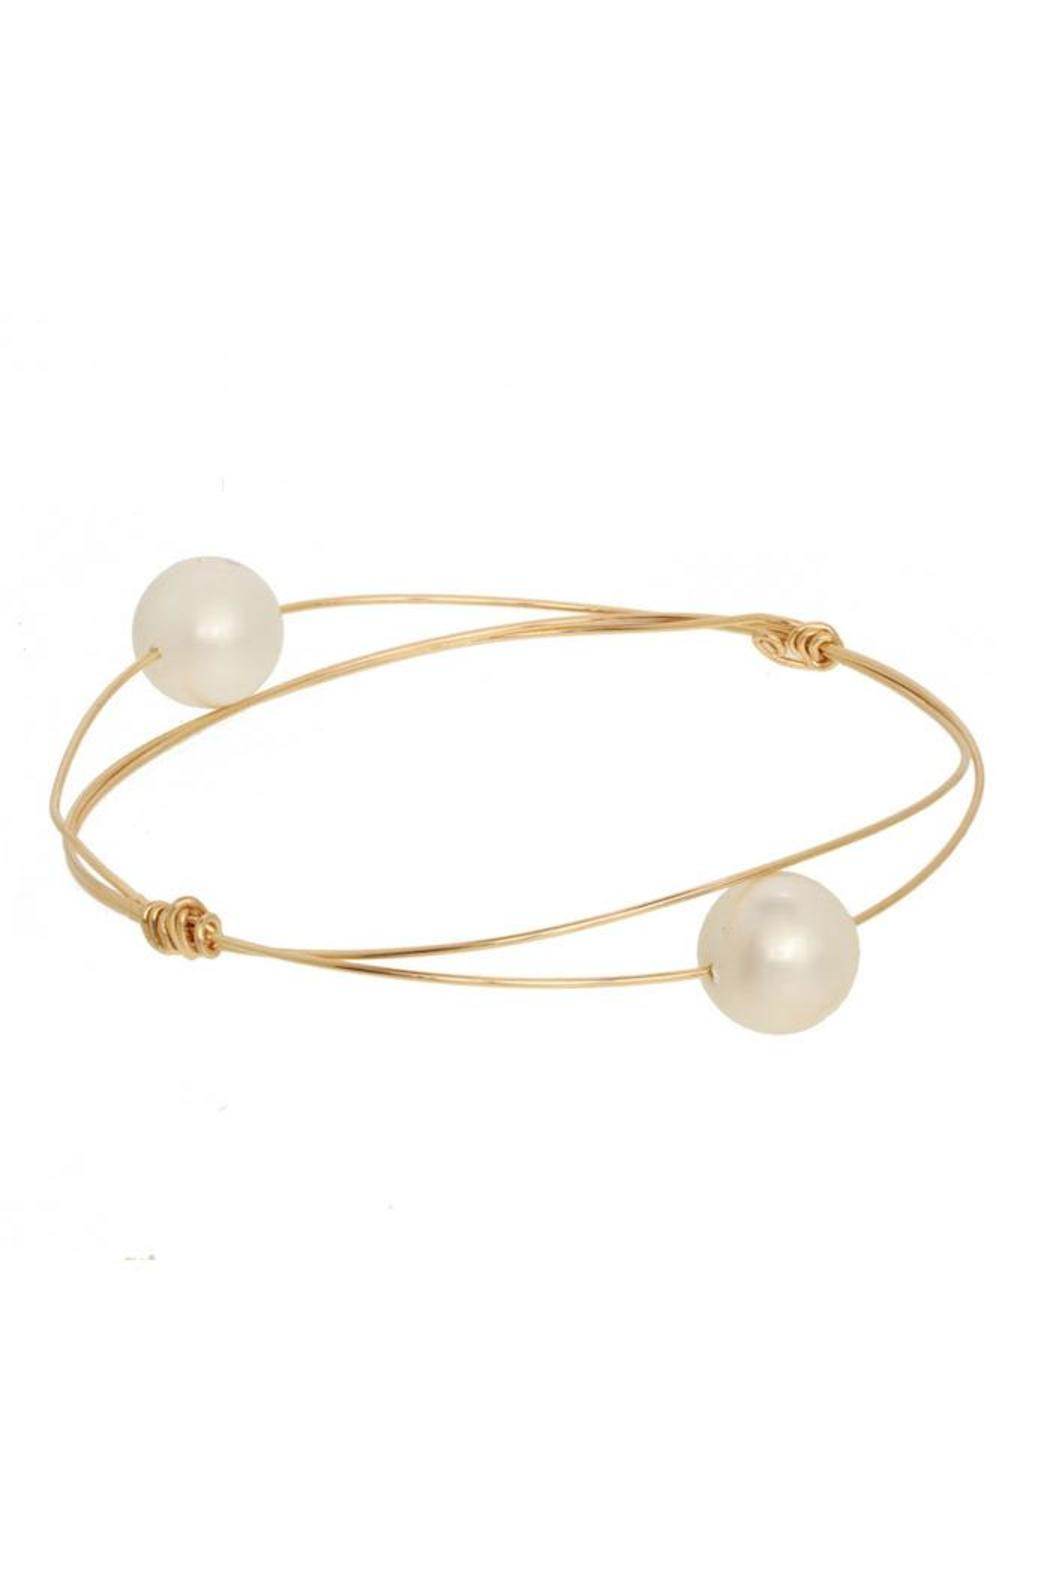 Anne Woodman Bangle With Pearls - Front Cropped Image